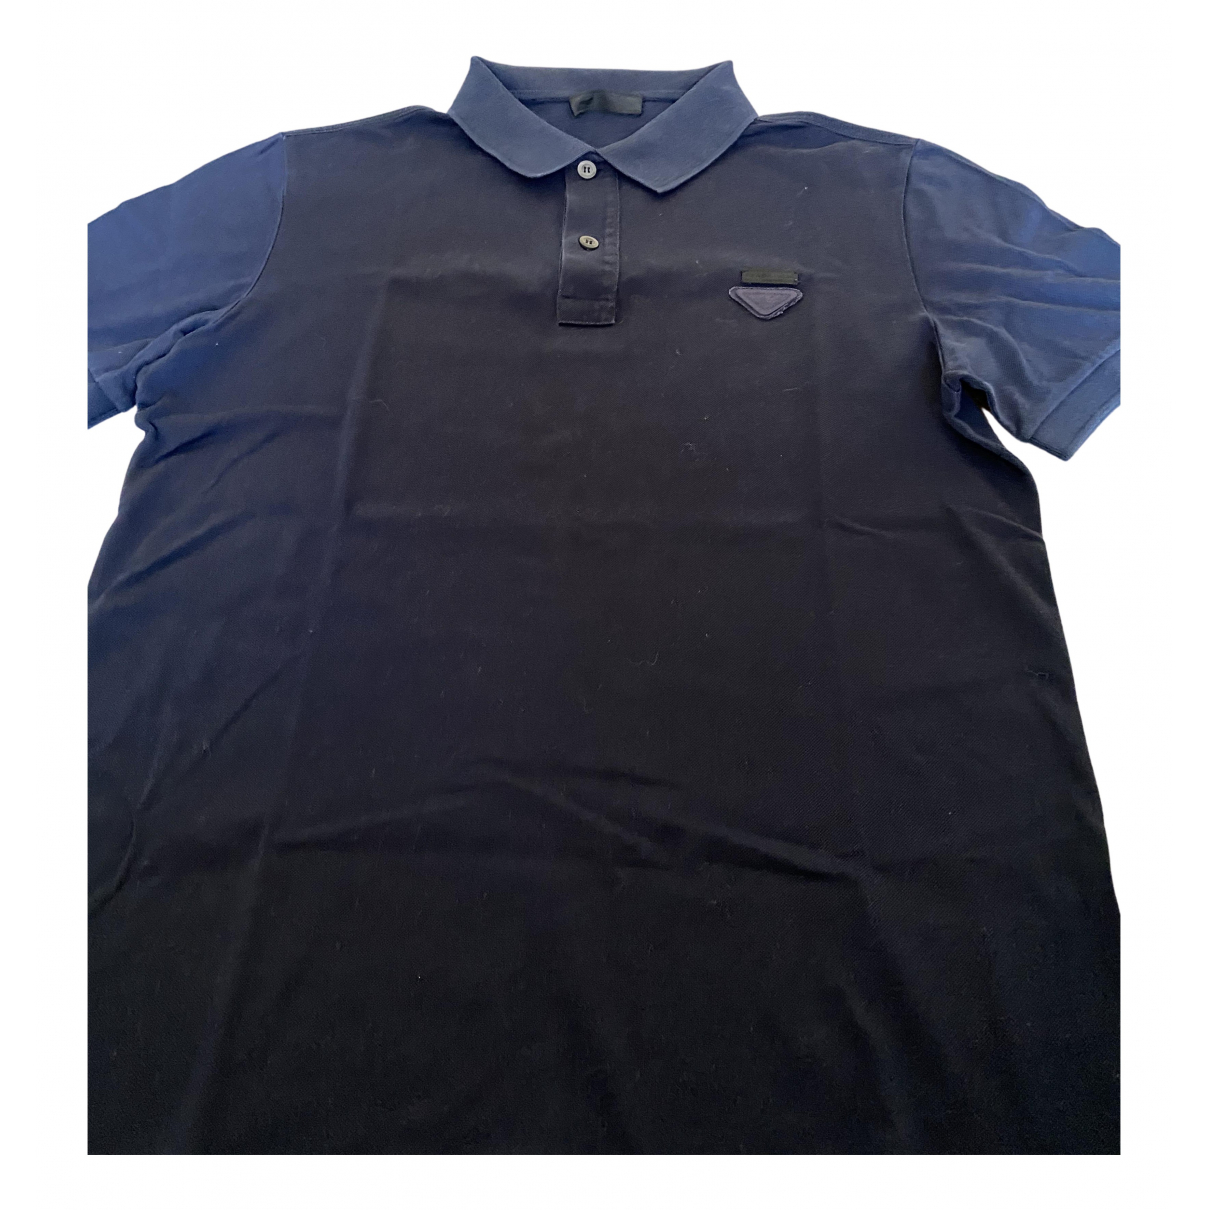 Prada N Blue Cotton Polo shirts for Men L International